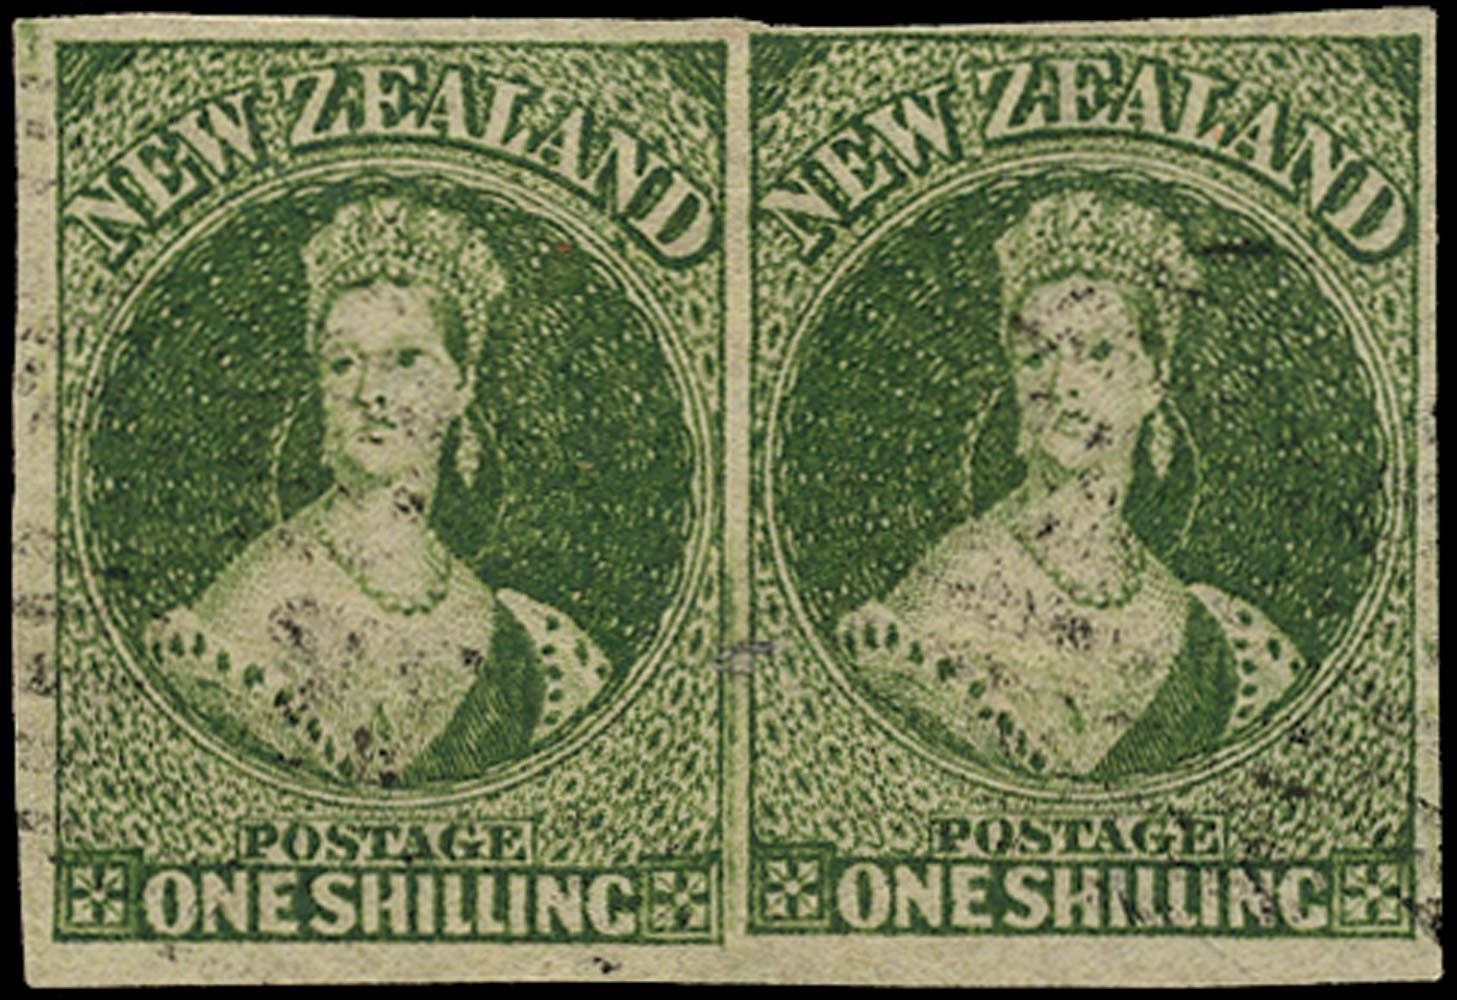 NEW ZEALAND 1862  SG46 Used 1s deep green watermark large star